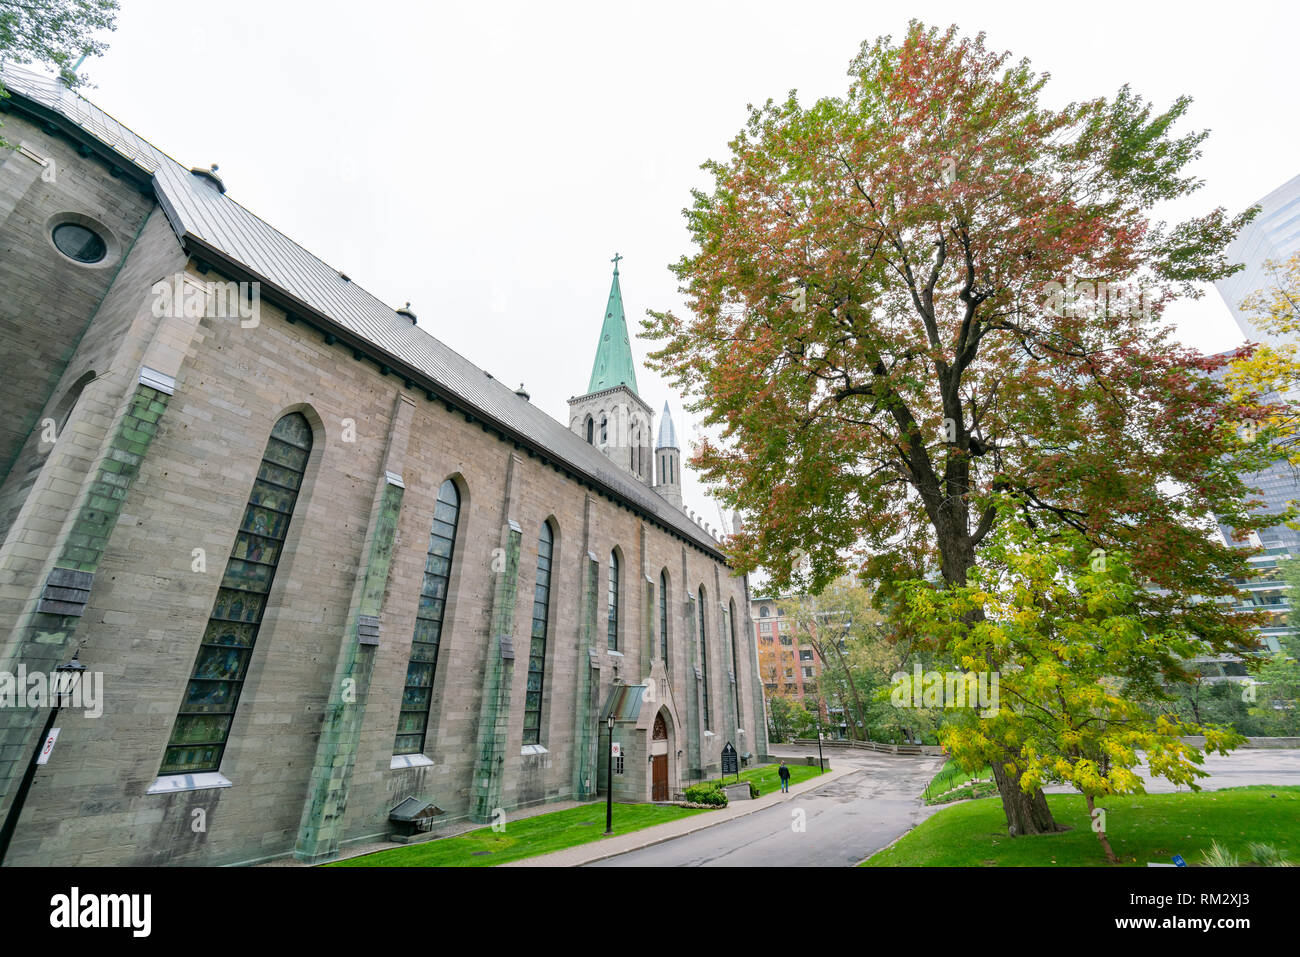 Exterior view of the famous Saint Patrick's Basilica at Montreal, Canada - Stock Image